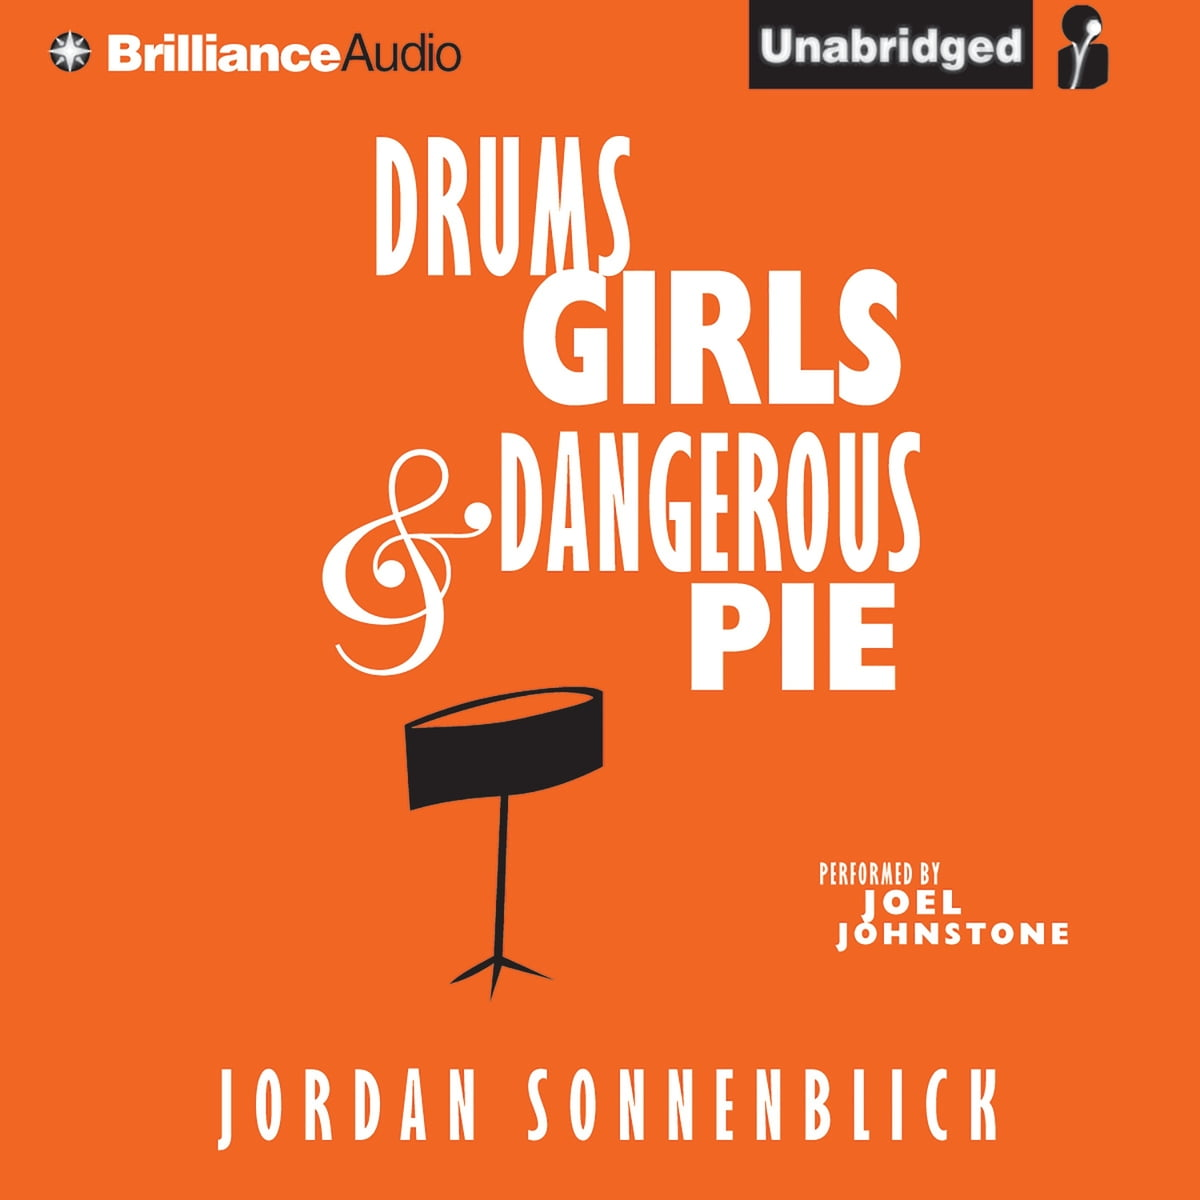 Drums, Girls, and Dangerous Pie Audiobook by Jordan Sonnenblick -  9781611061642 | Rakuten Kobo